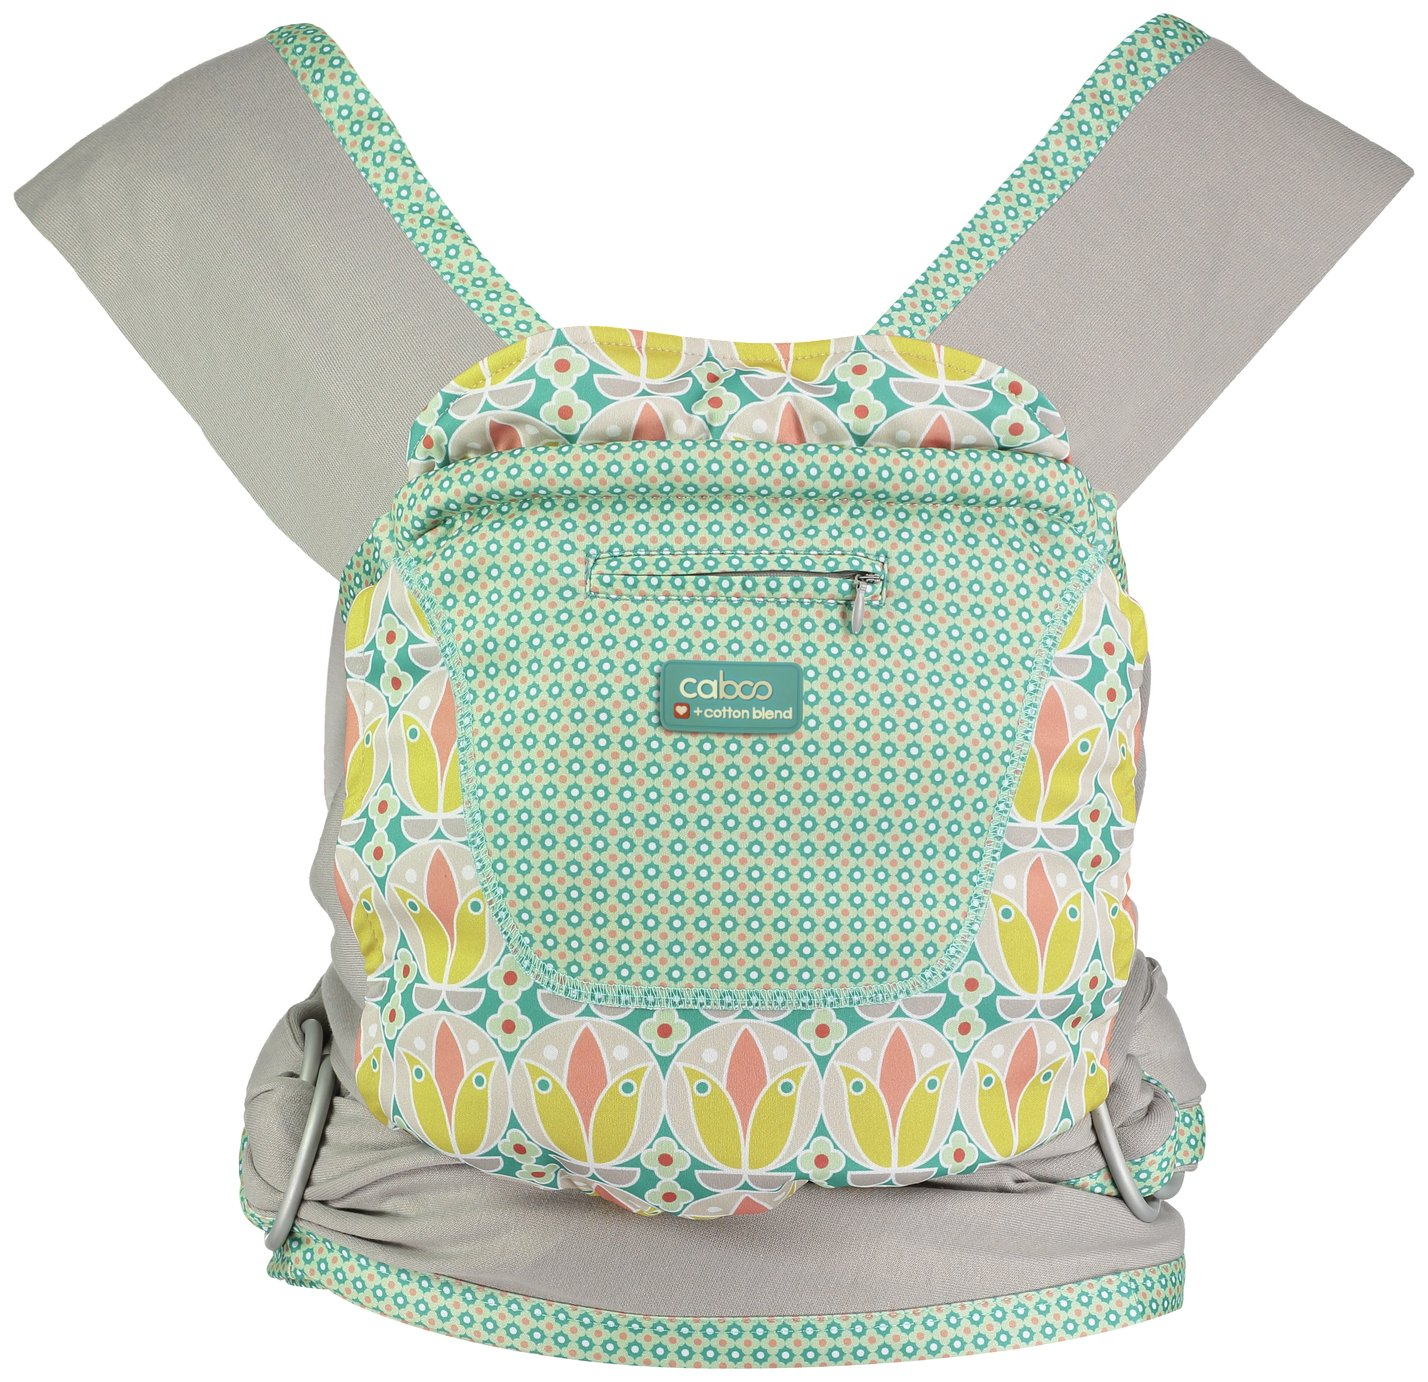 Image of Caboo+ Cotton Blend Baby Carrier - Olivia